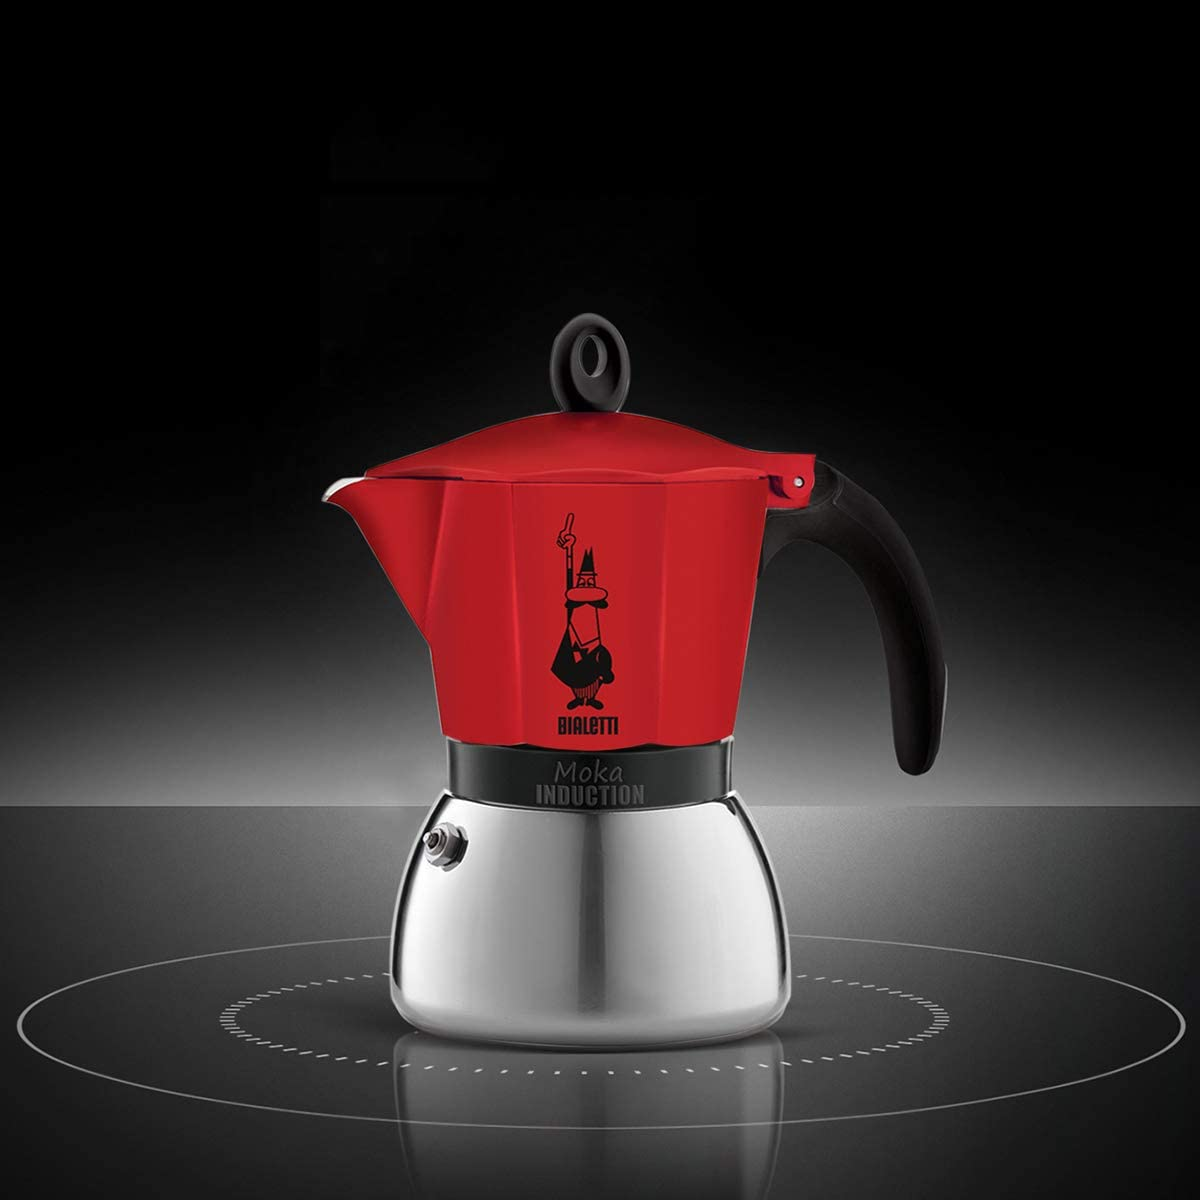 Bialetti 0004922 Moka Induction test et avis